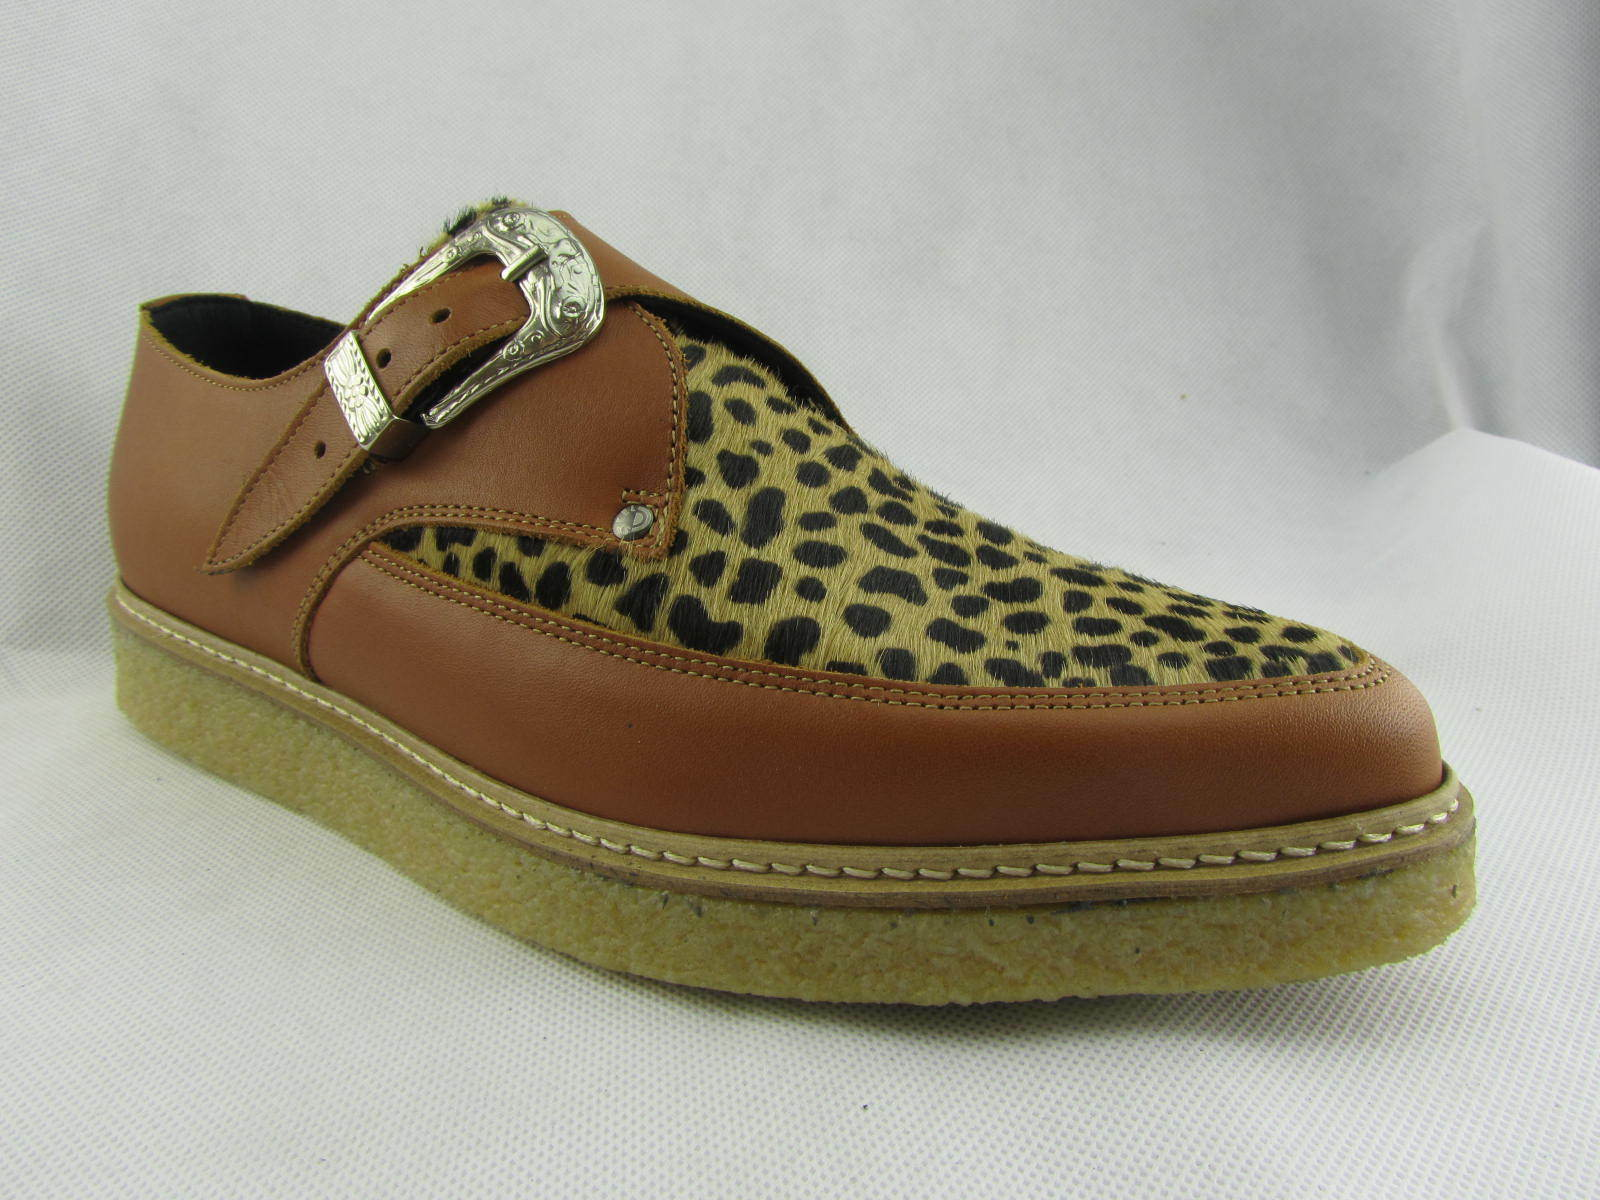 Steel Ground New Shoes Tan Leather Buckle Creepers Creepers Creepers Monk Leopard Pointed Toe d95014